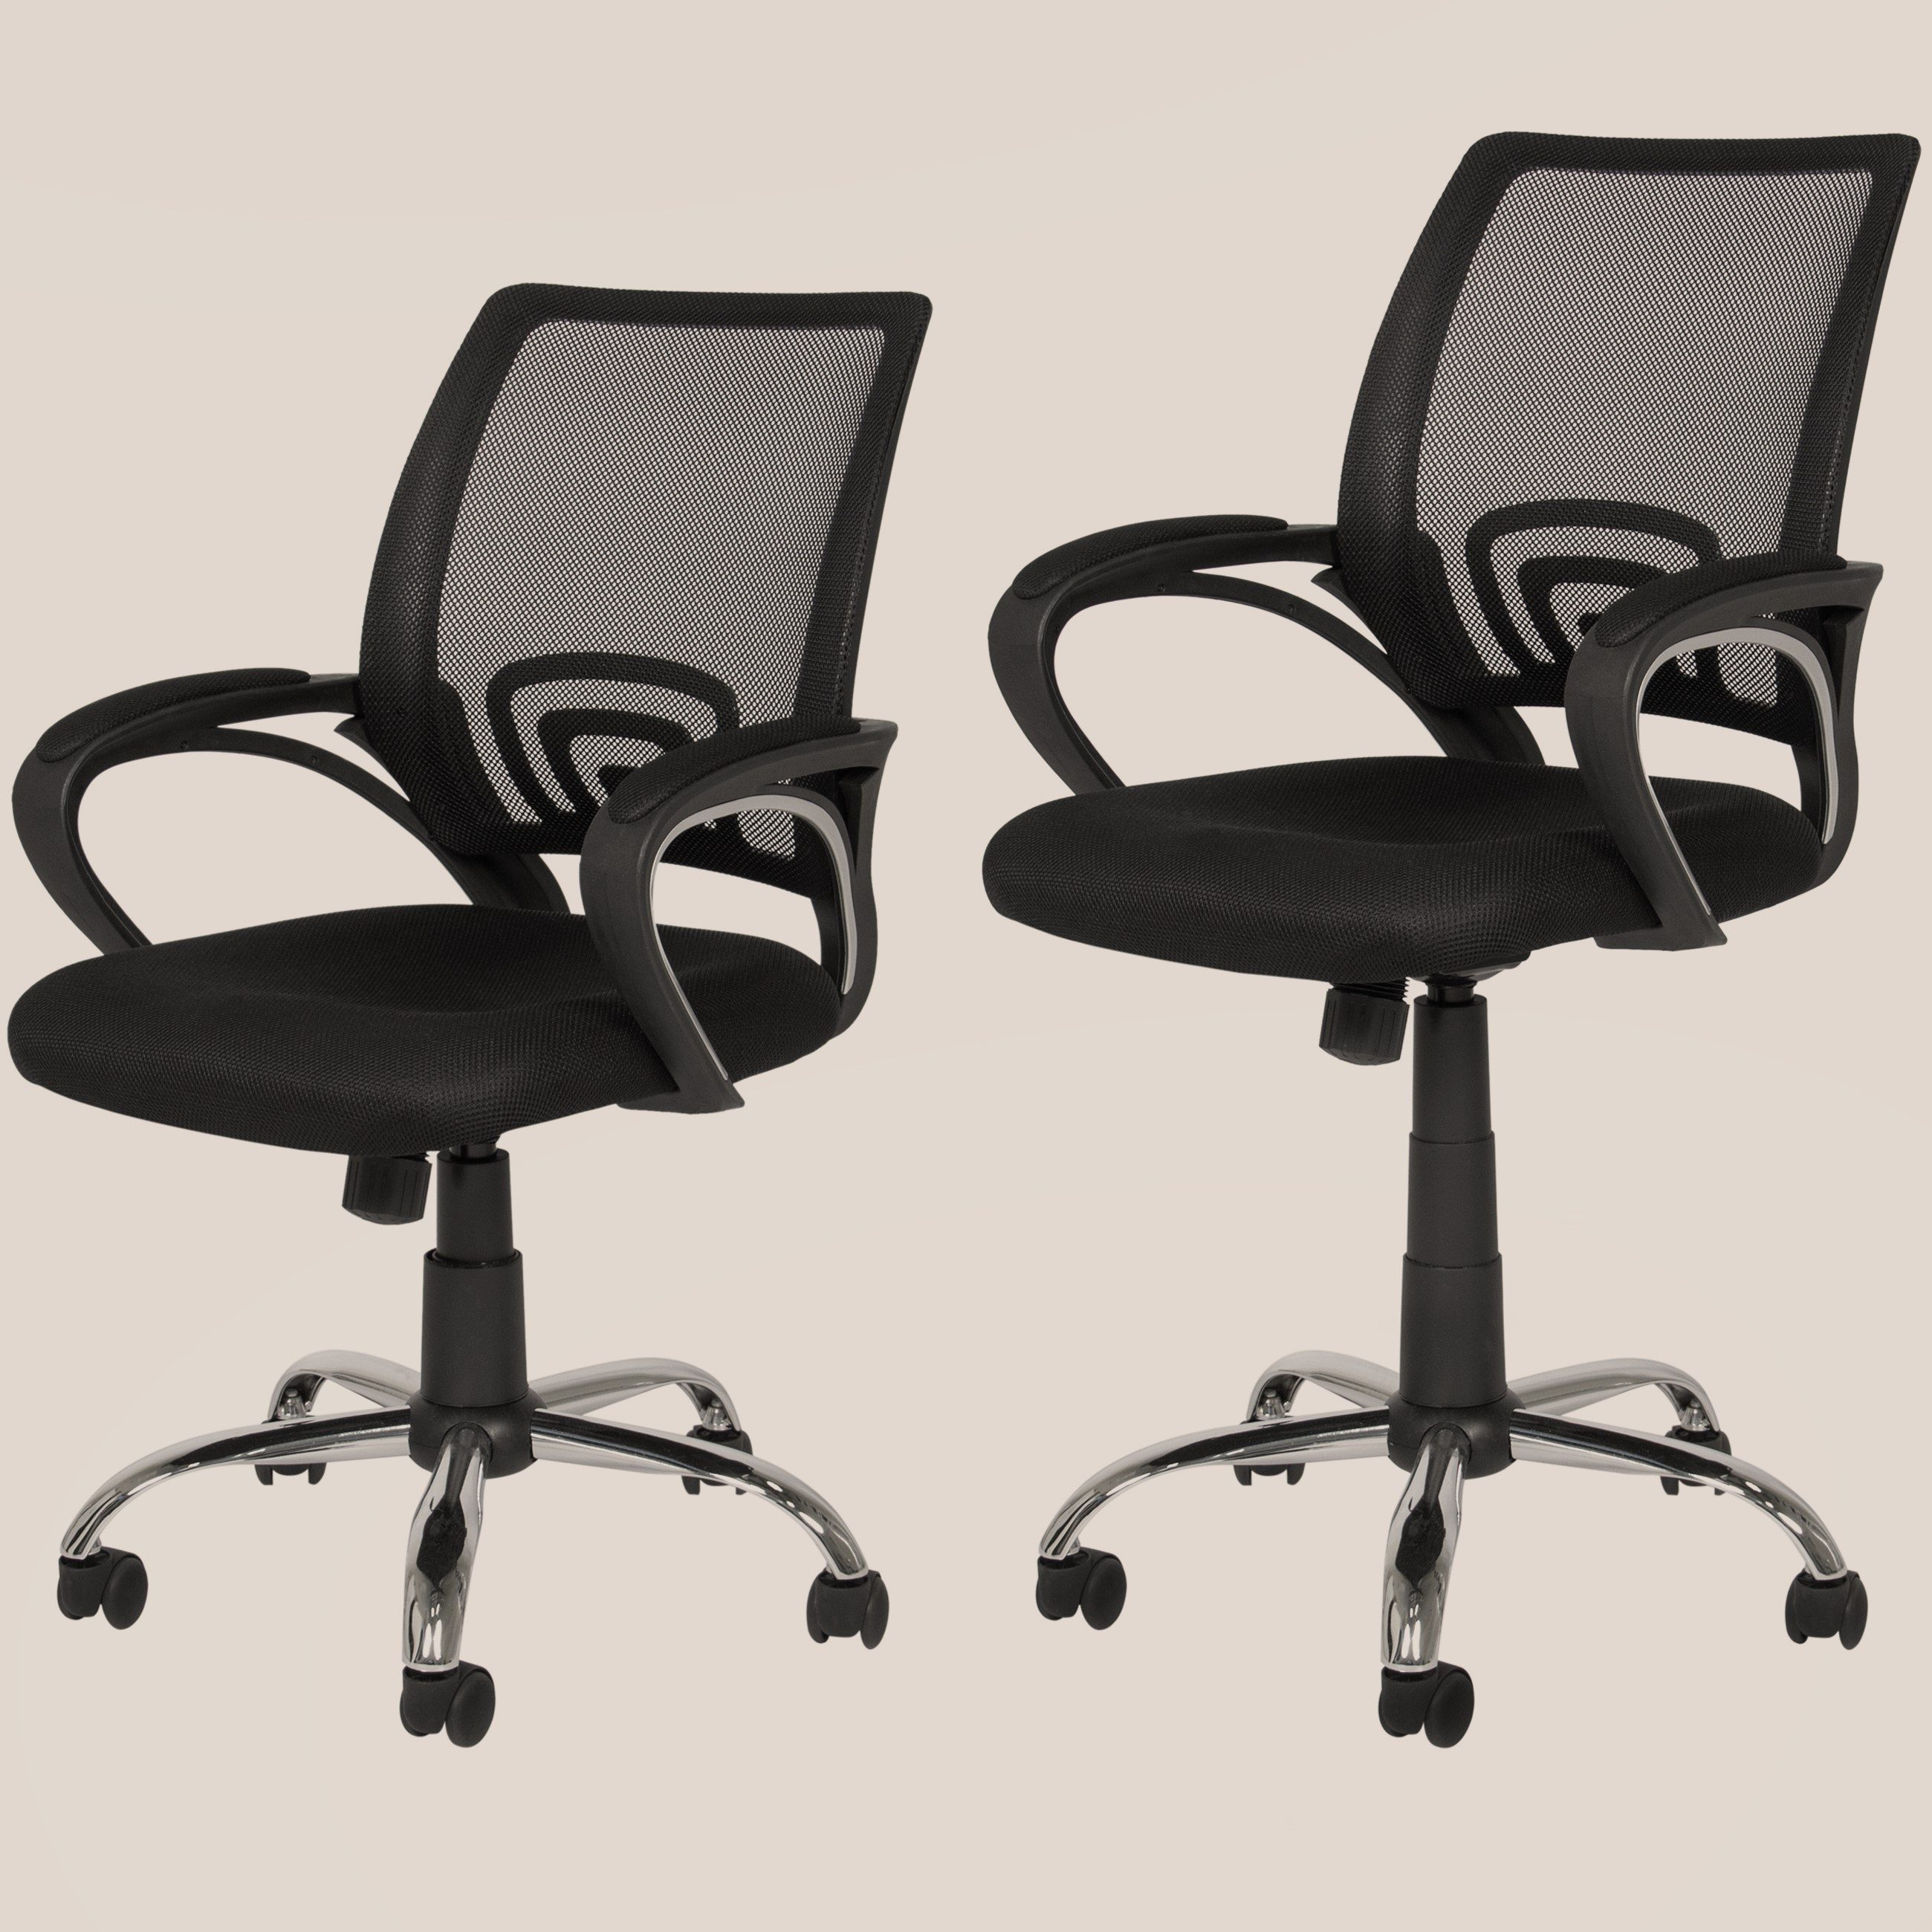 Ergonomic Mesh Midback Office Chair Review